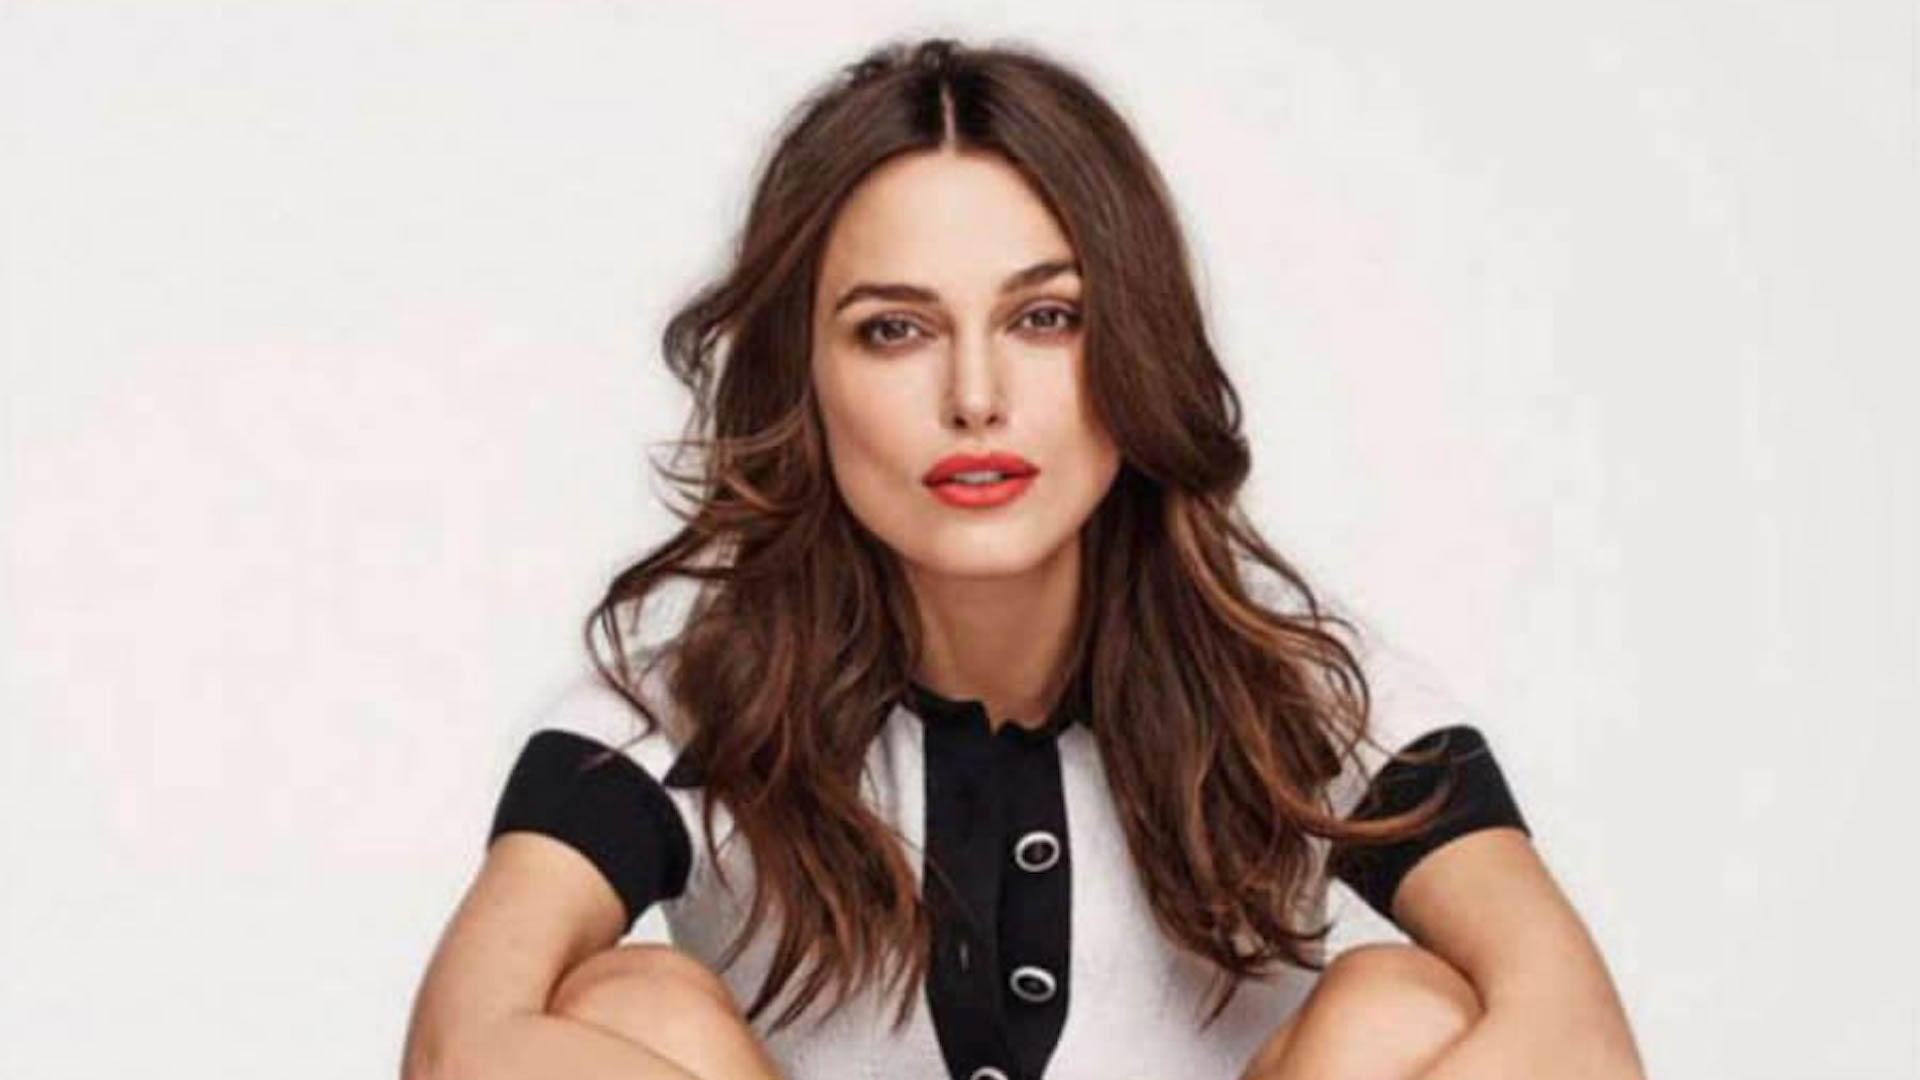 Keira-Knightley-for-Elle-UK-March-2015-2